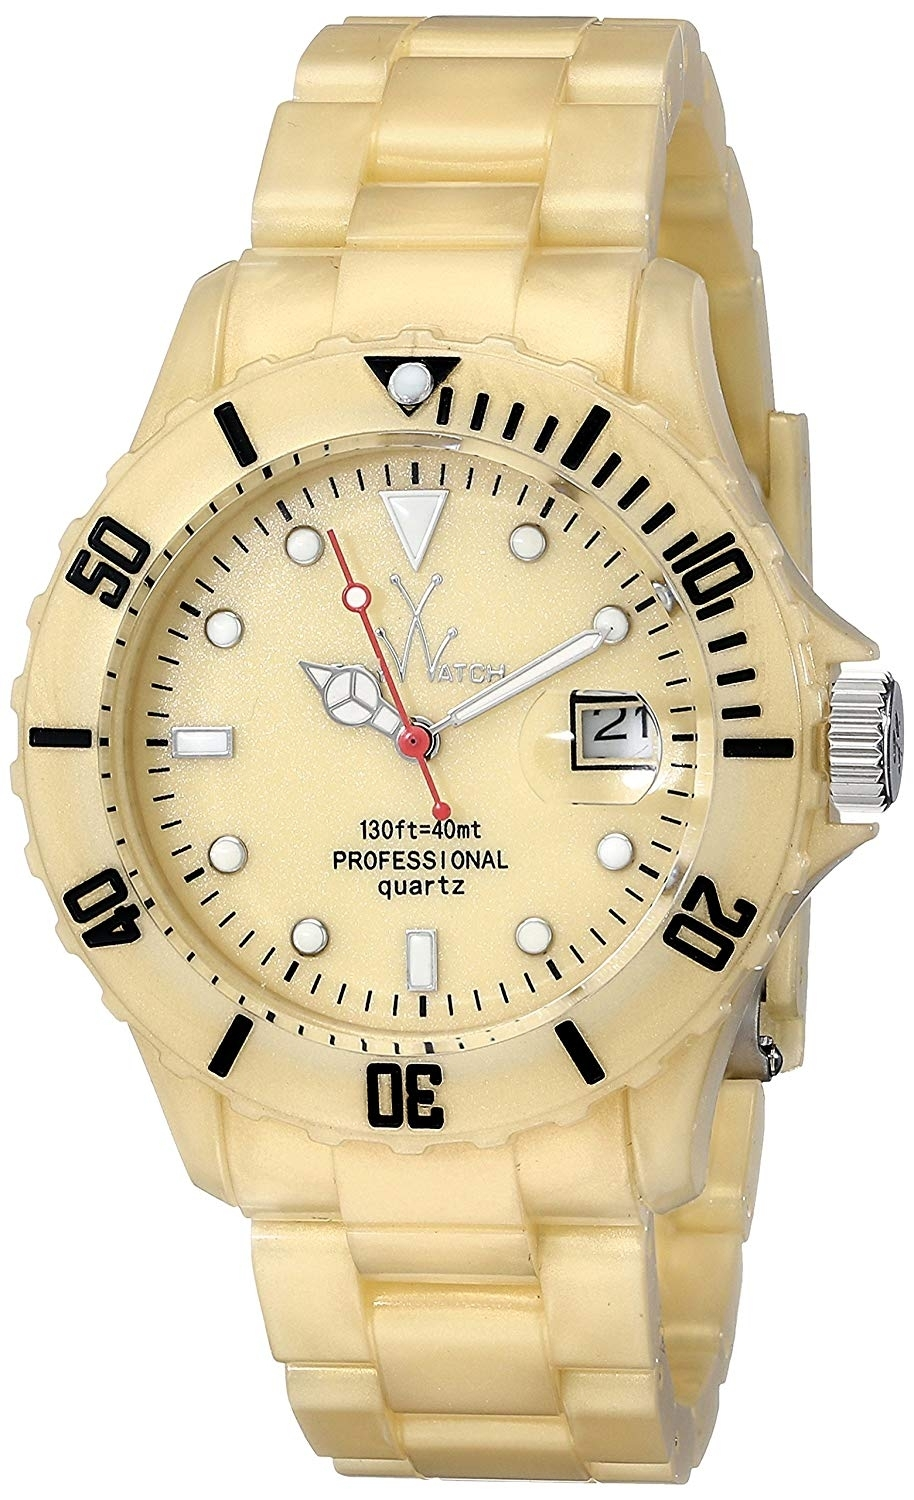 Watch_Toy_Watch_Polycarbonate_Yellow_Yellow_Woman_Flp02gd